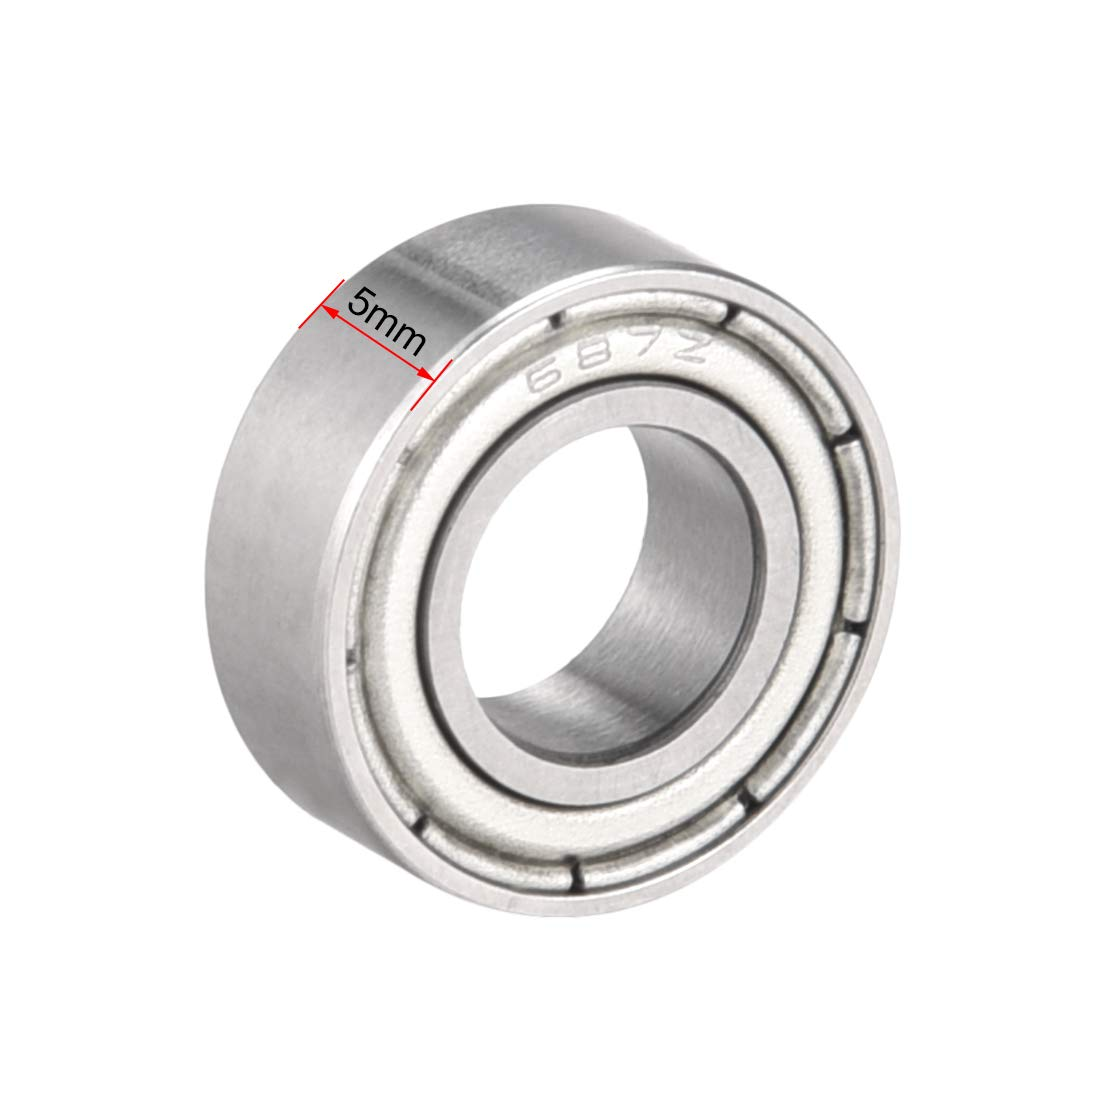 sourcing map 685ZZ Deep Groove Ball Bearing Double Shield 685-2Z 5mm x 11mm x 5mm Chrome Steel Bearings Pack of 1